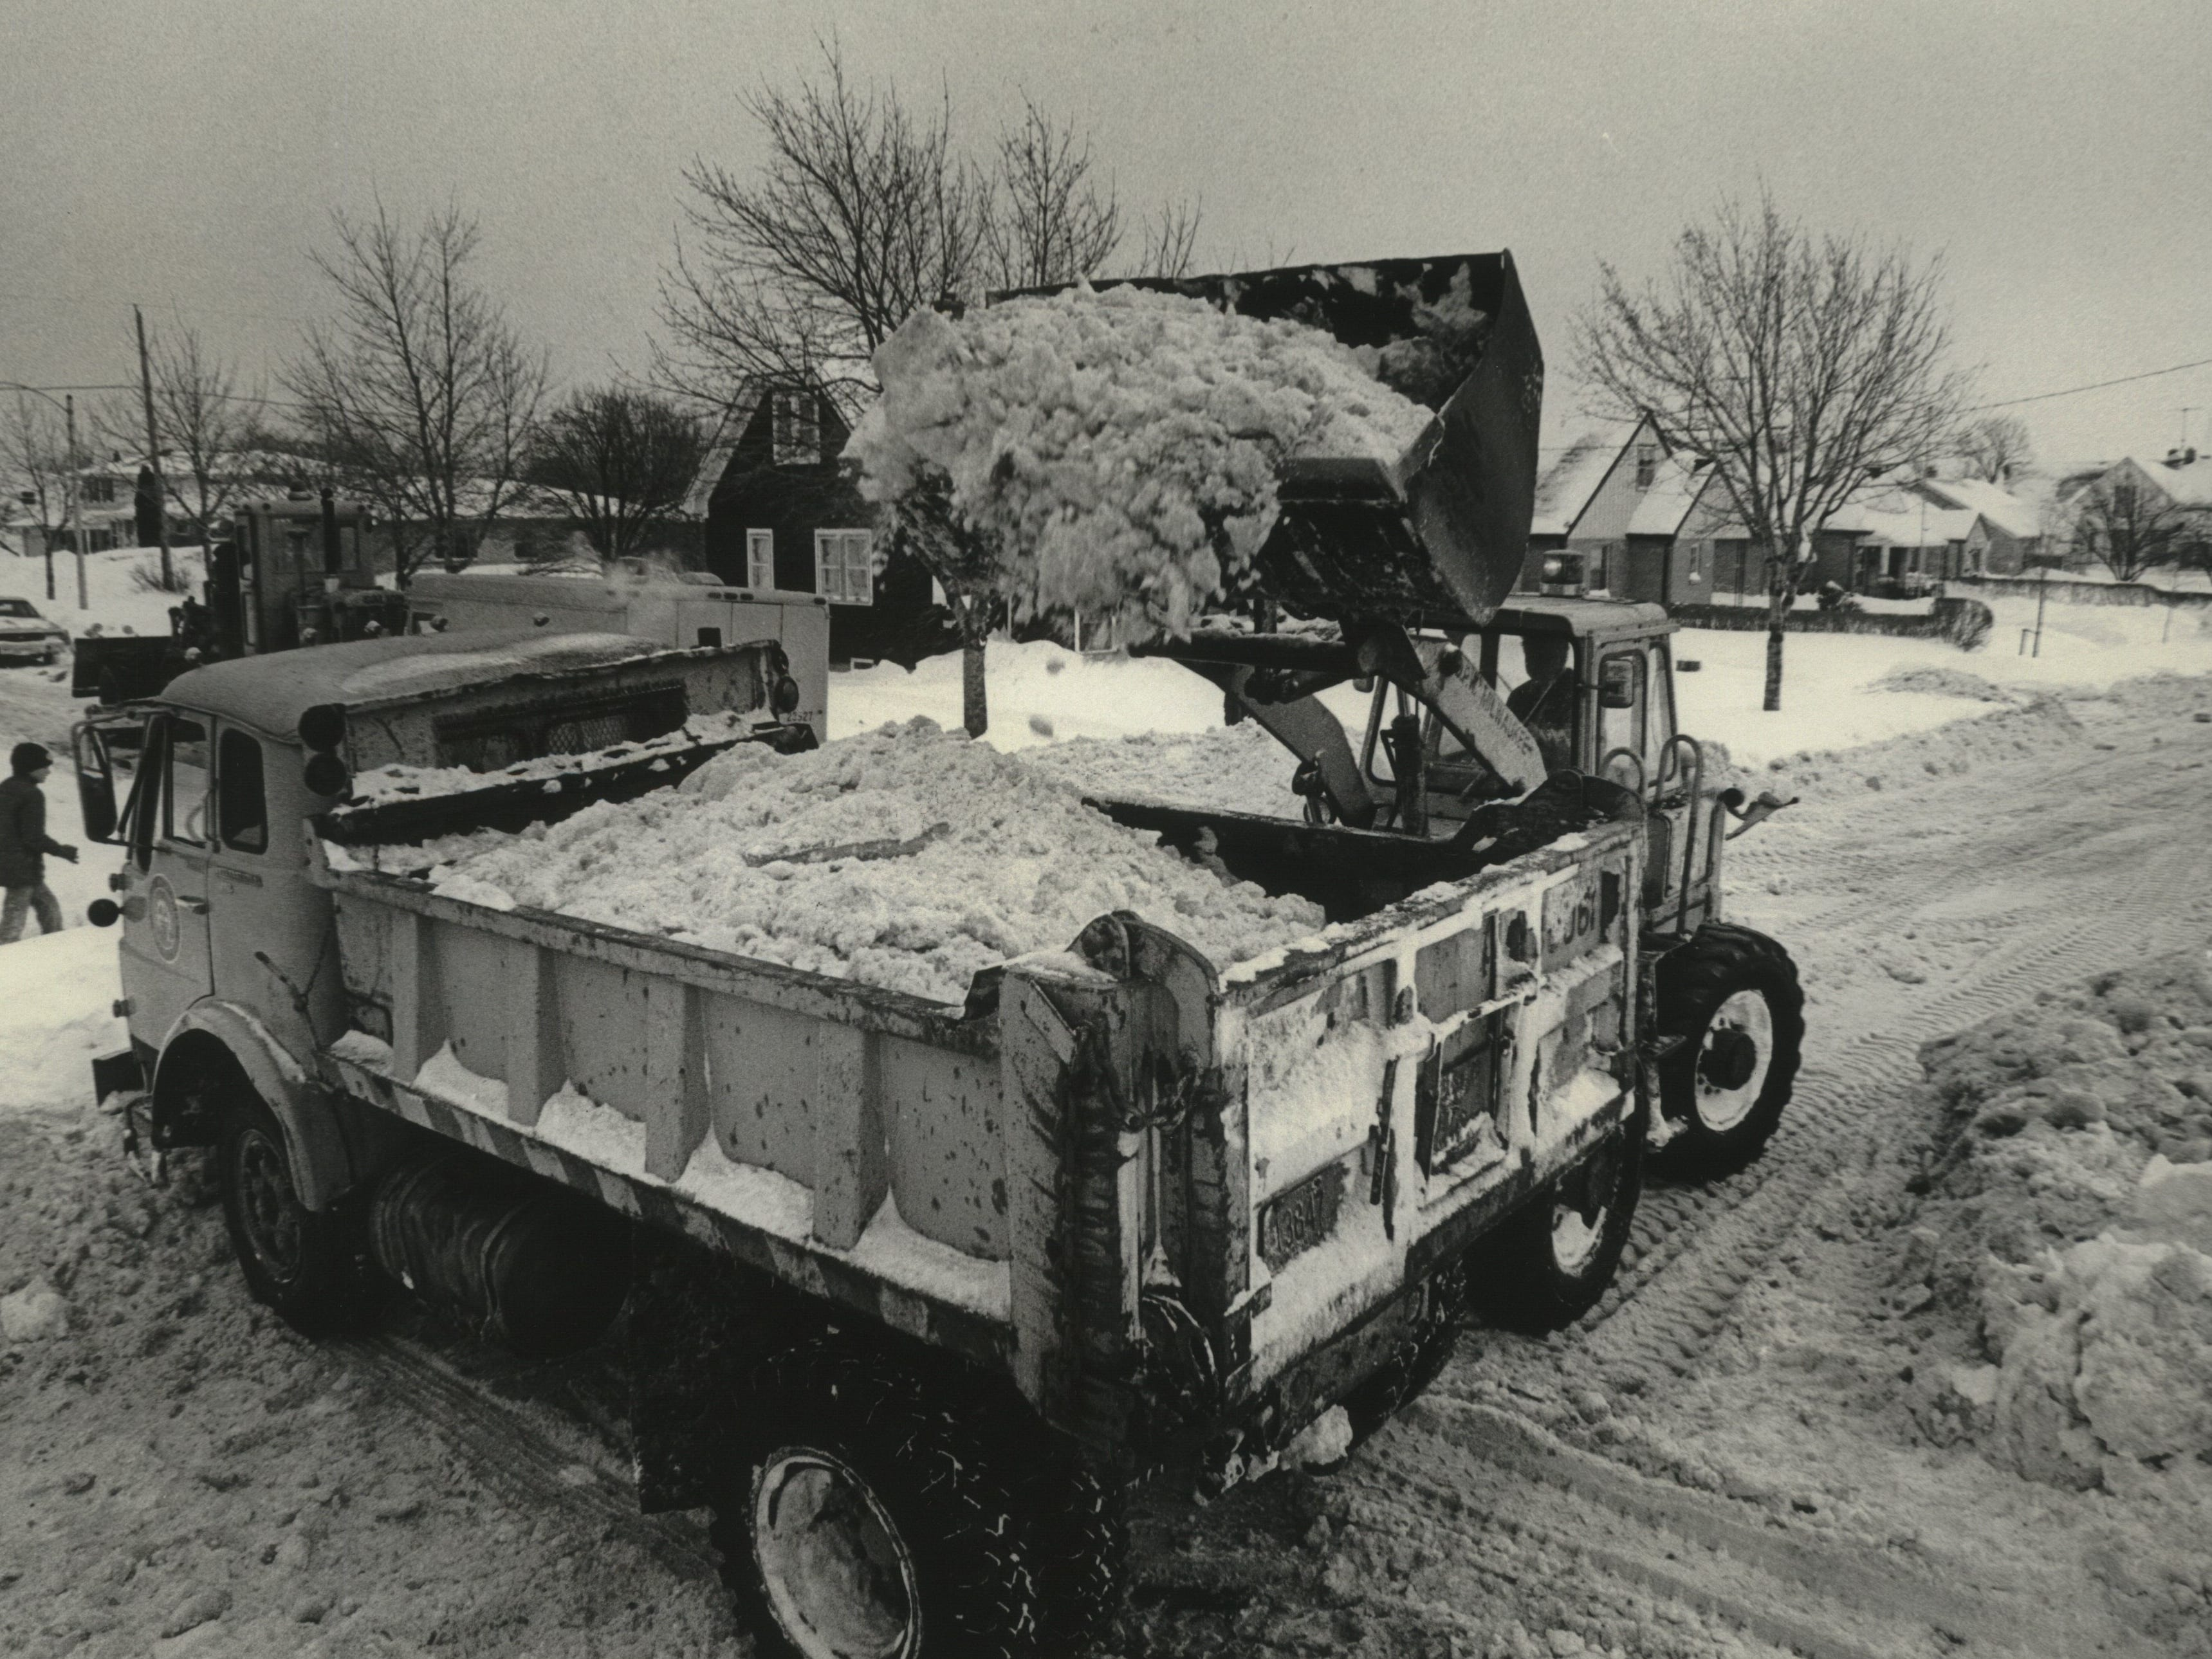 A city crew removes snow Wednesday from the blocked intersection of Quincy and Cudahy streets on Milwaukee's south side on Jan. 18, 1979. This photo was published in the Jan. 18, 1979, Milwaukee Journal.